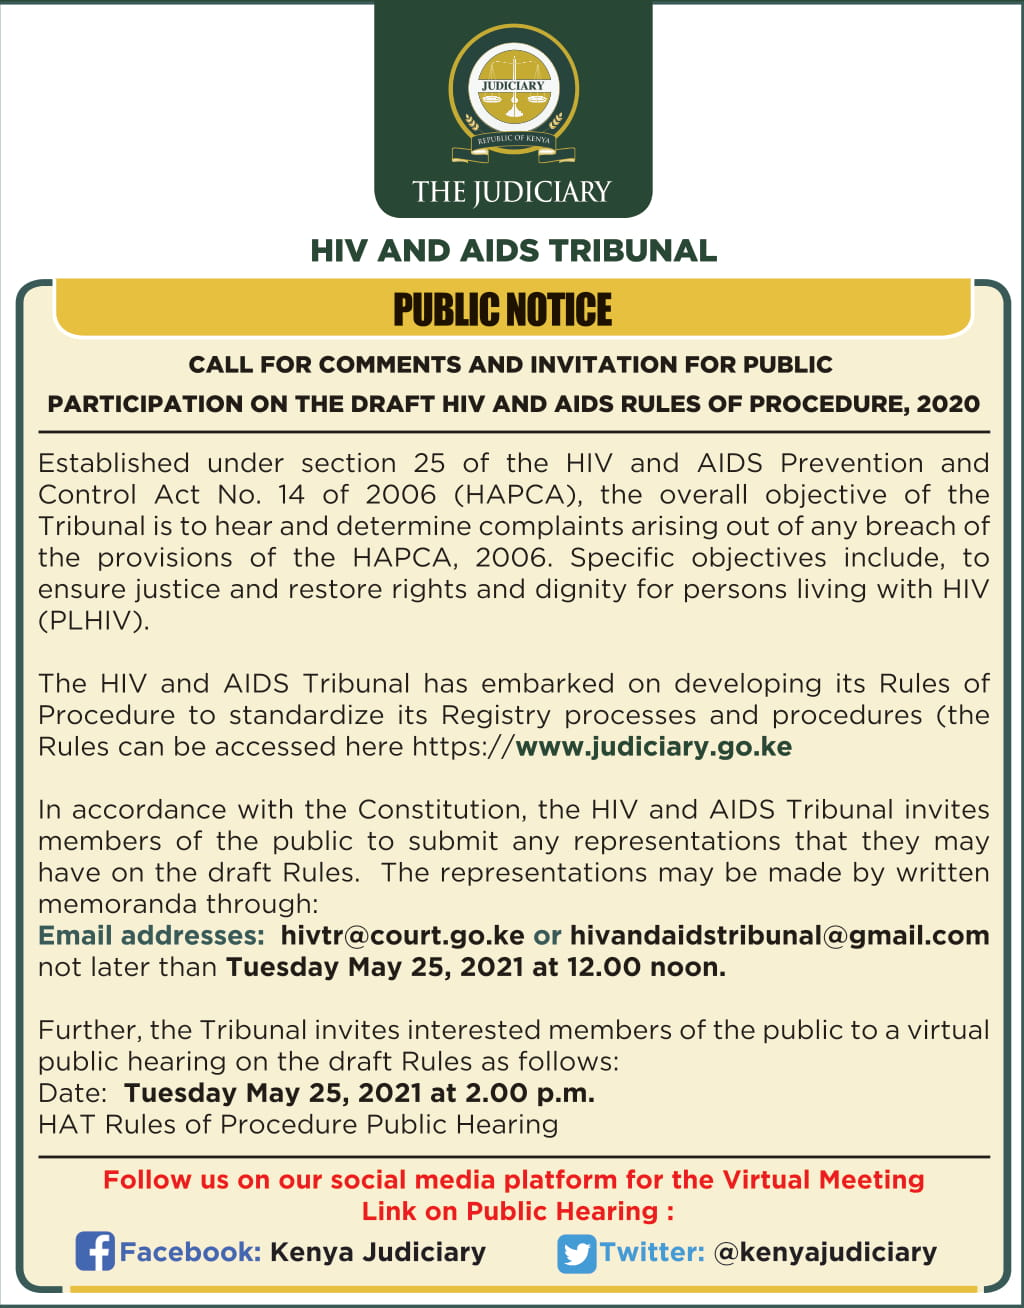 NOTICE: Call for Comments & Invitation for Public Participation on the Draft HIV and AIDS Rules of Procedure, 2020